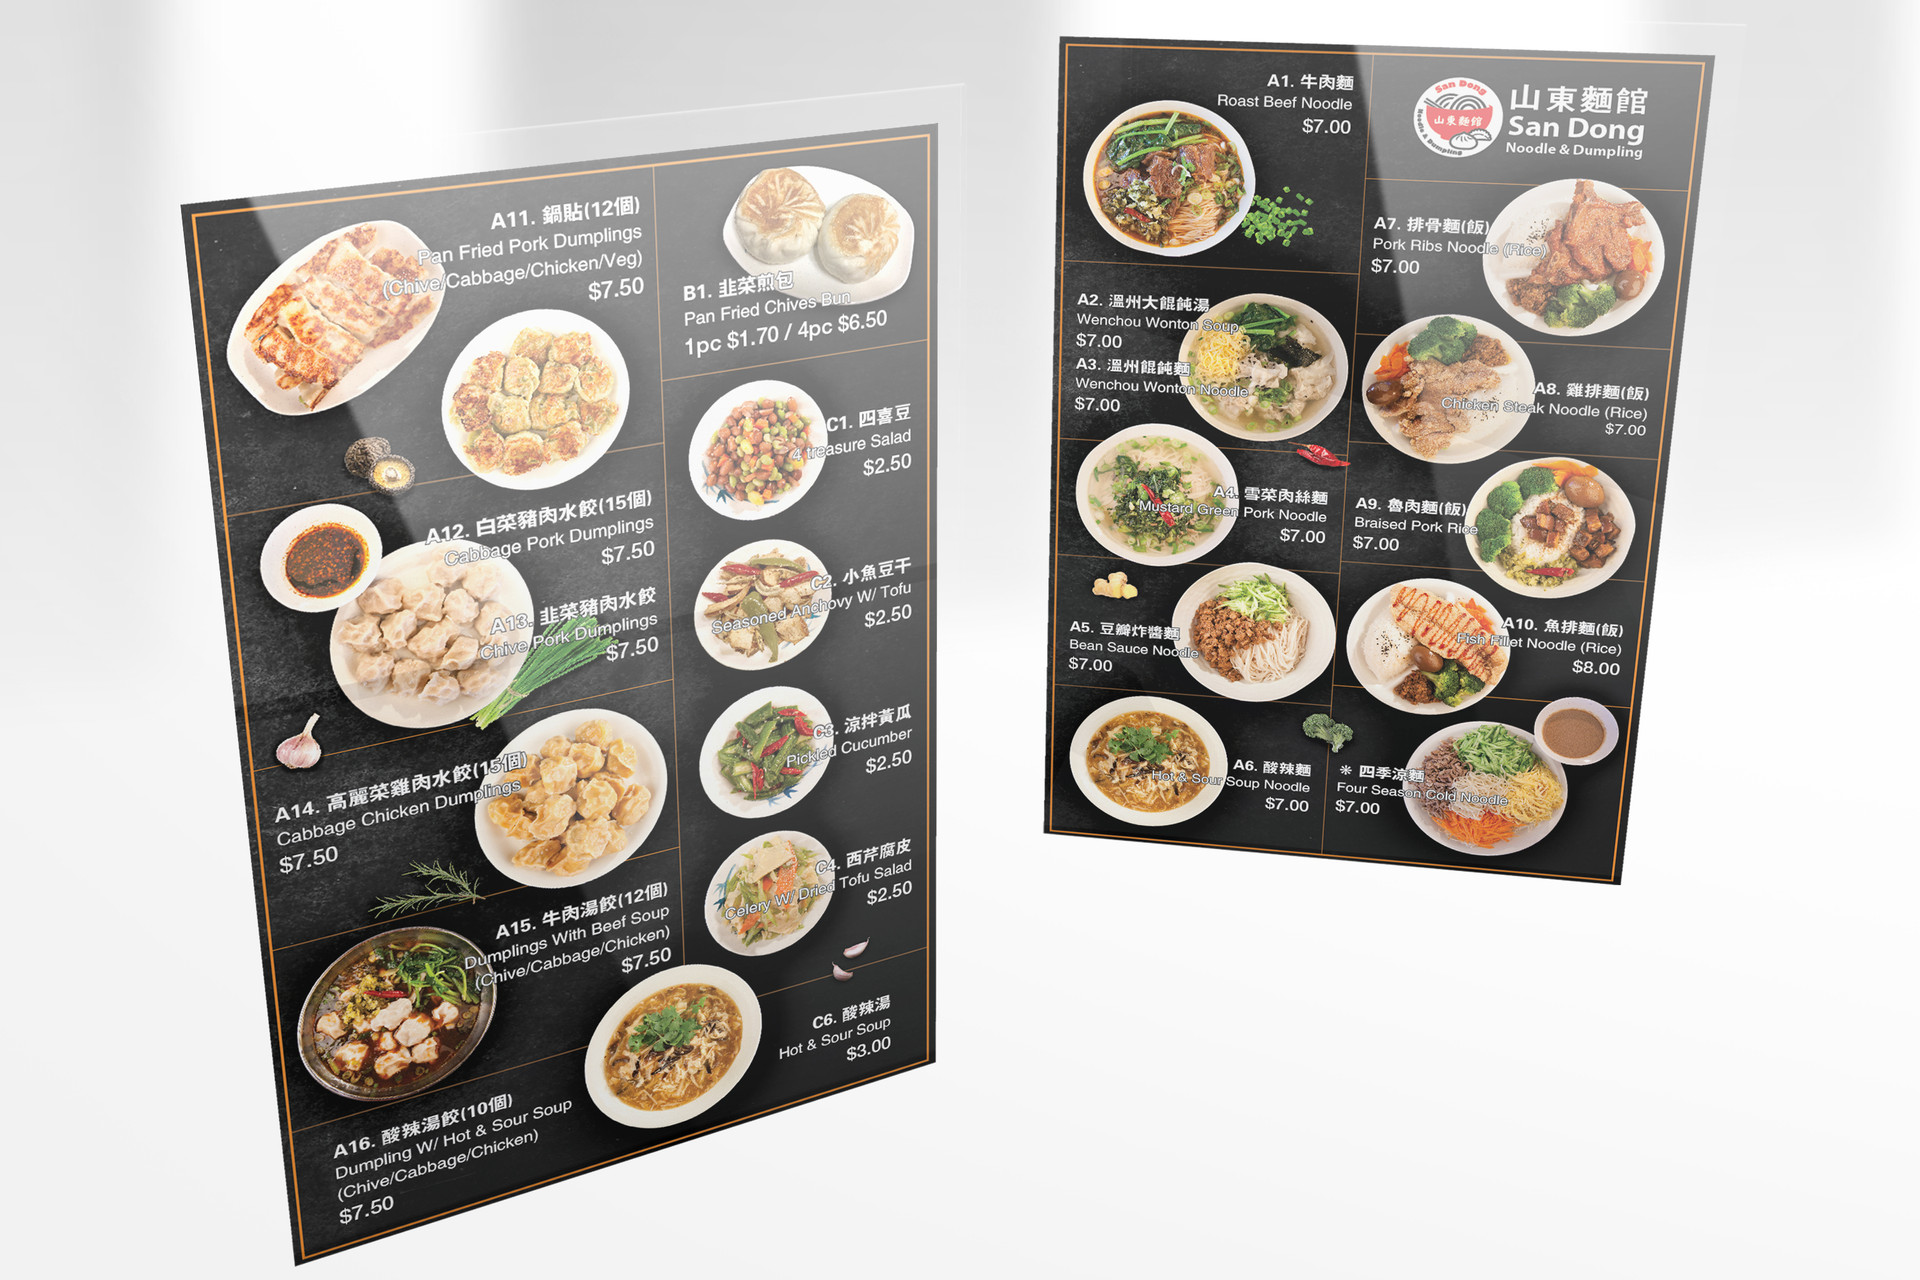 sangdong-menu.jpg